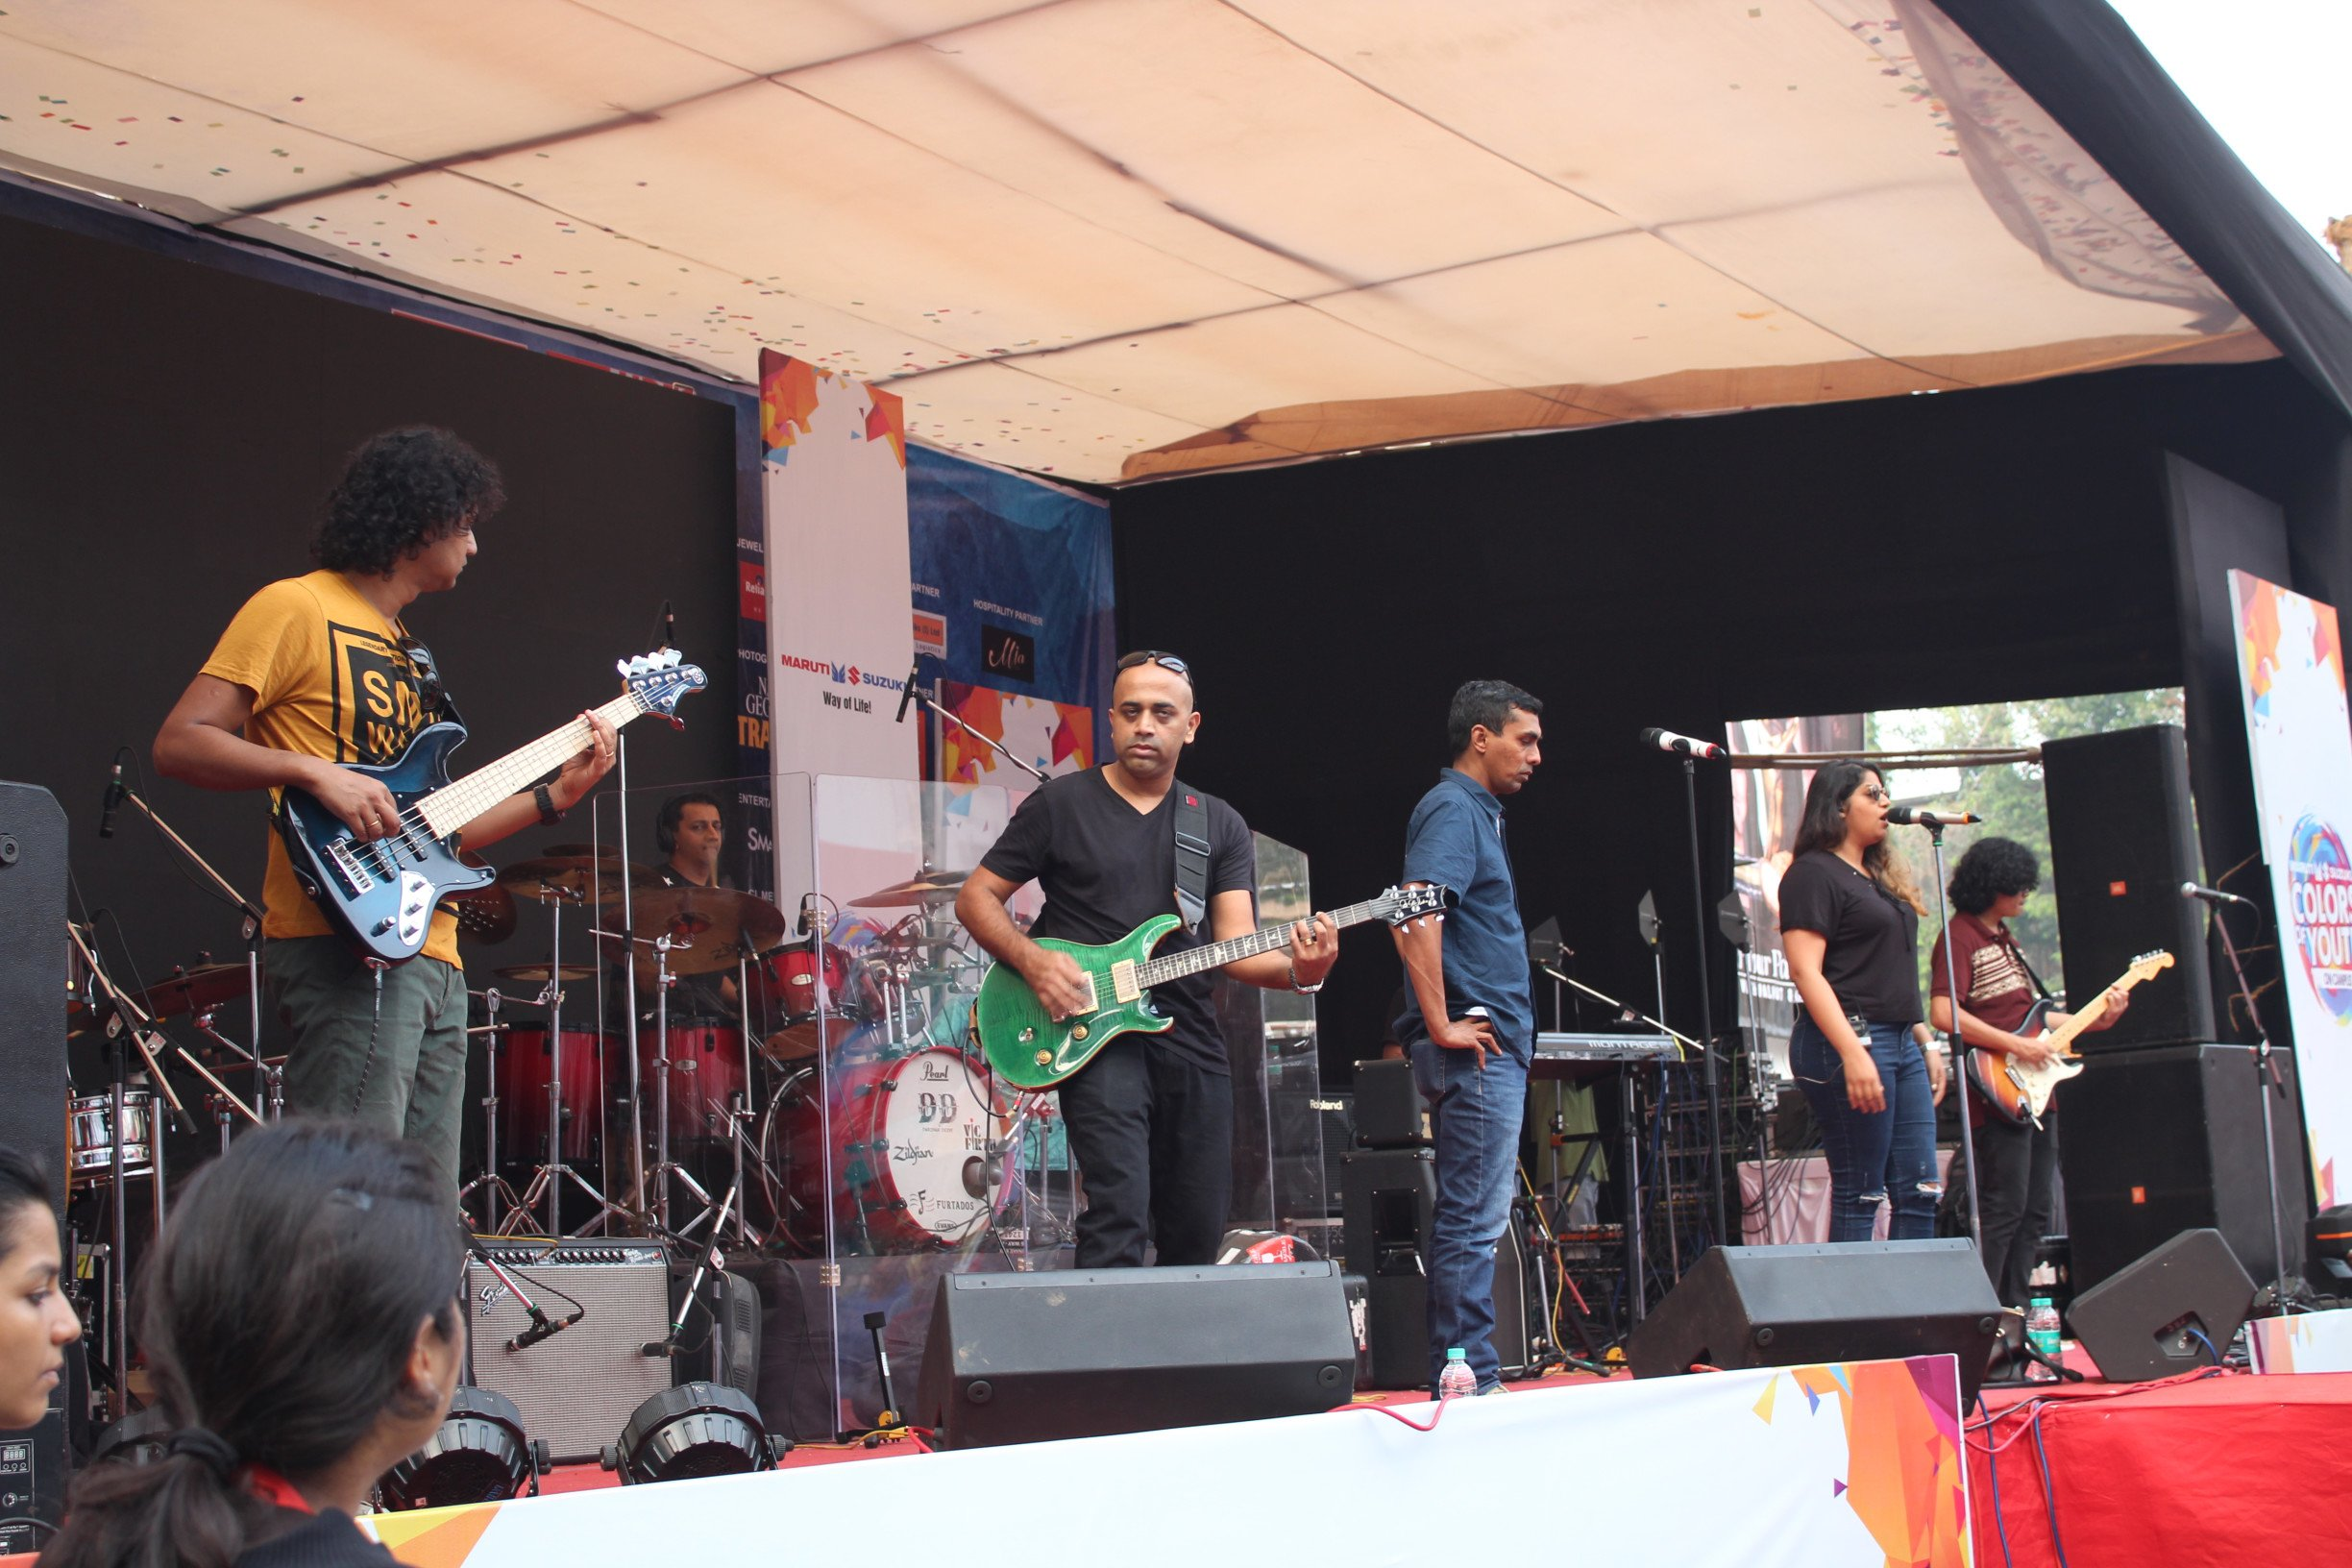 Mithibai's 'Kshitij' fest rocks the youth circuit with an exemplary theme and enormous footfall